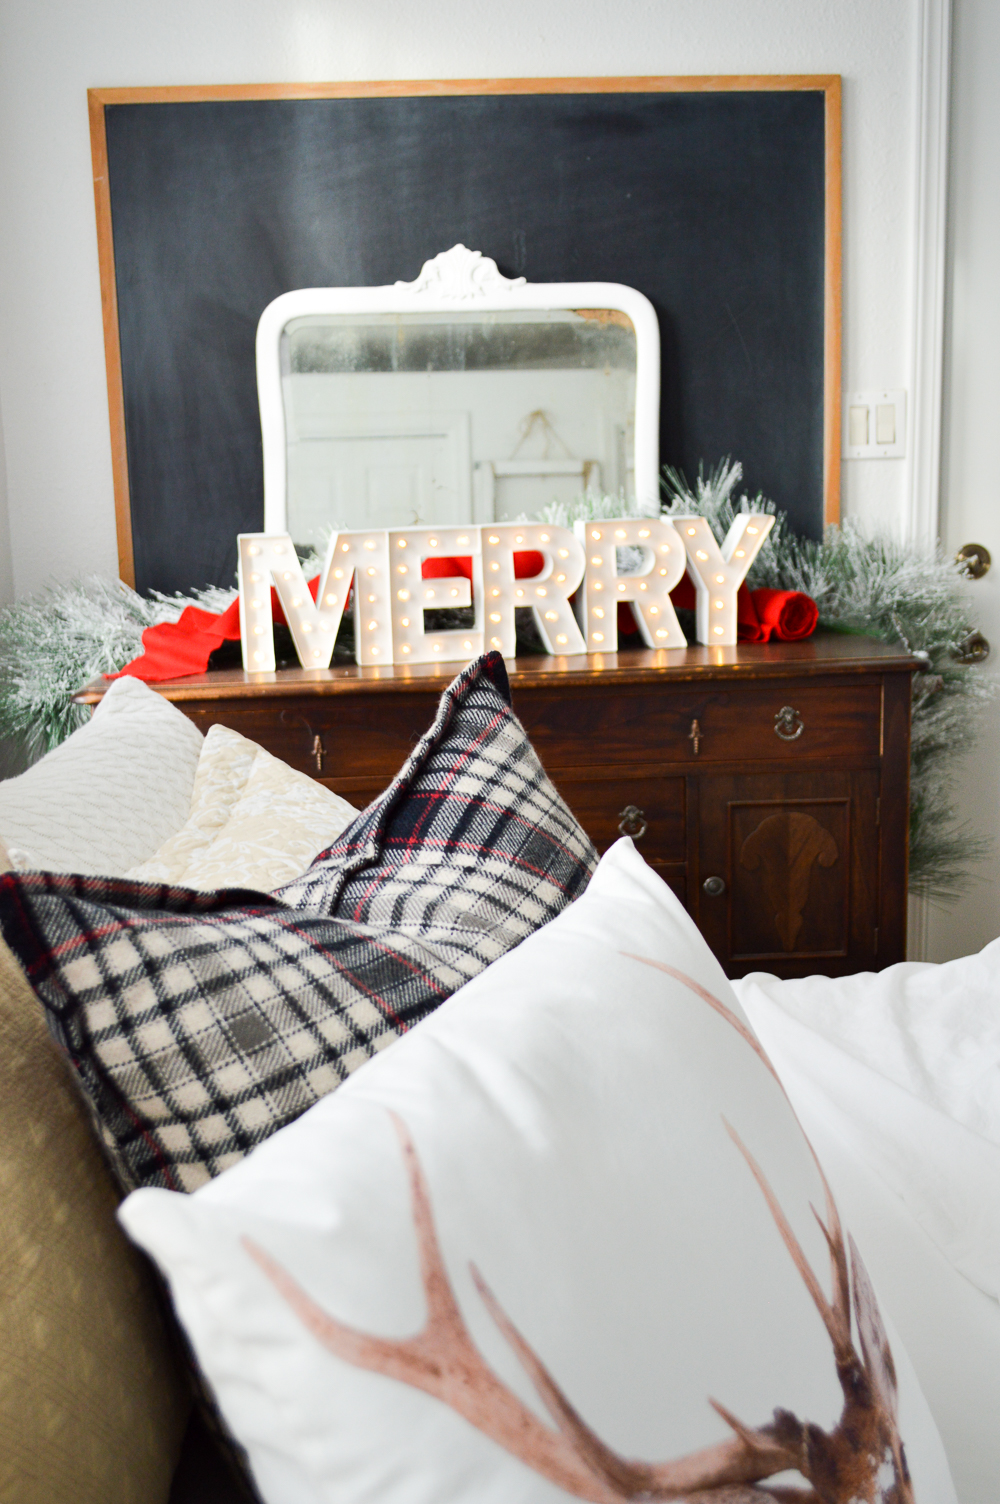 Merry Christmas Guest Bedroom at The Little Cottage foxhollowcottage.com Holiday marque light, layered with vintage mirror and old school chalk board on wood buffet.